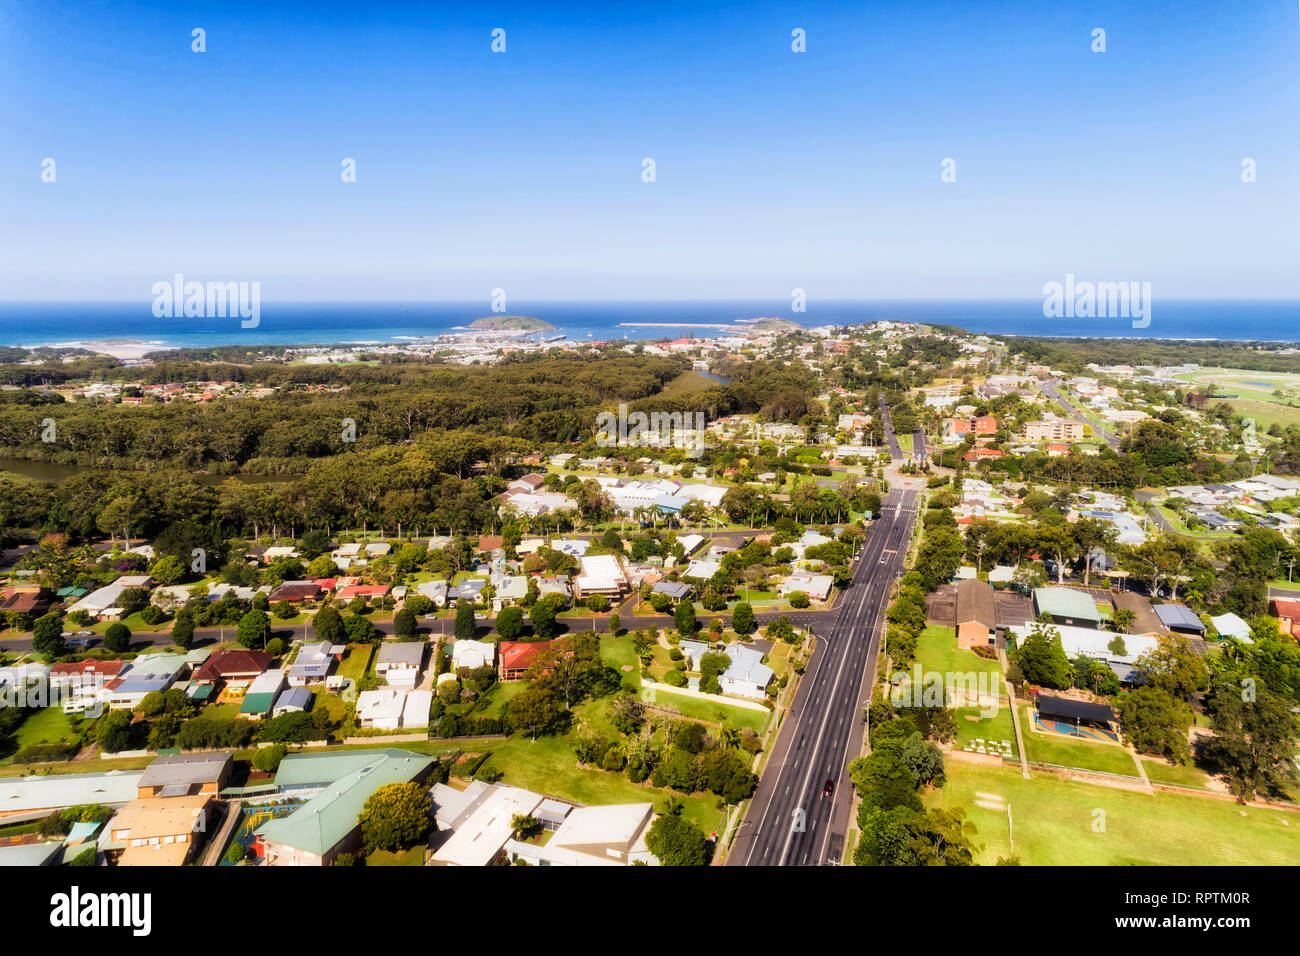 Aerial view over local regional town Coffs Harbour on Australian Middle North Coast of NSW towards Pacific ocean waterfront over local suburbs, street Stock Photo